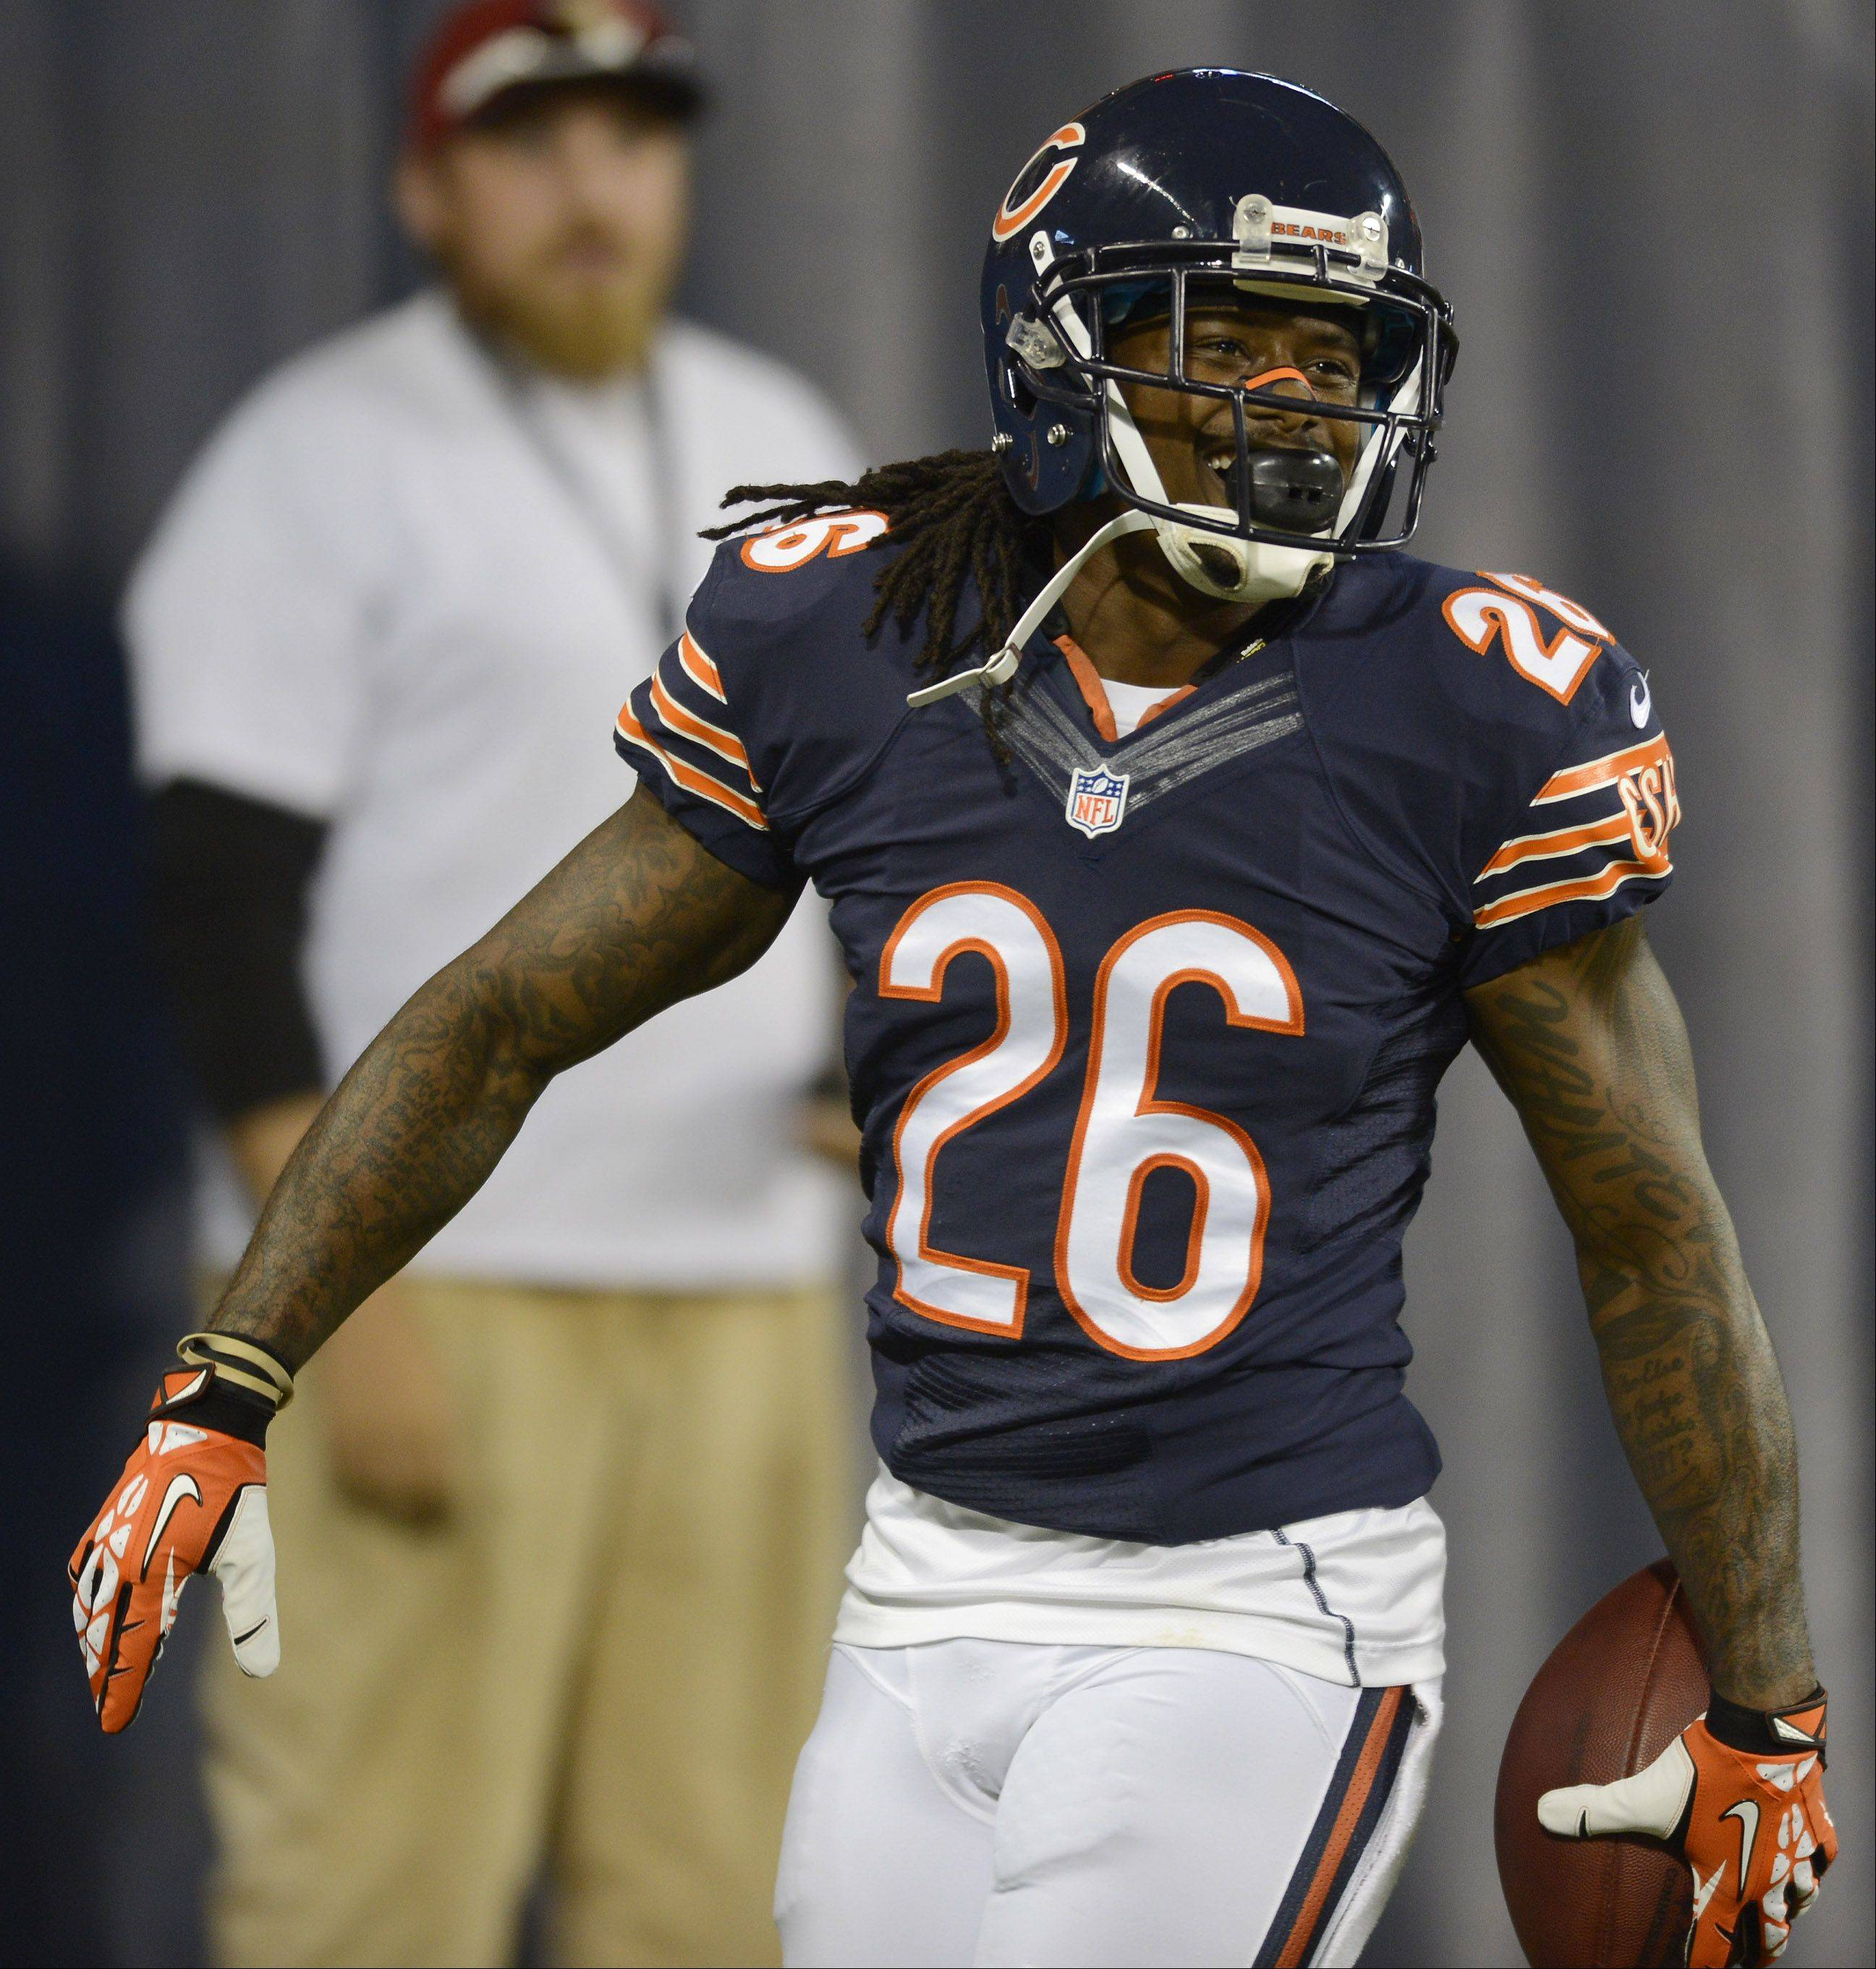 Although he didn't make the Pro Bowl this year, Bears cornerback Tim Jennings had 4 interceptions and played solidly down the stretch to earn a new contract.